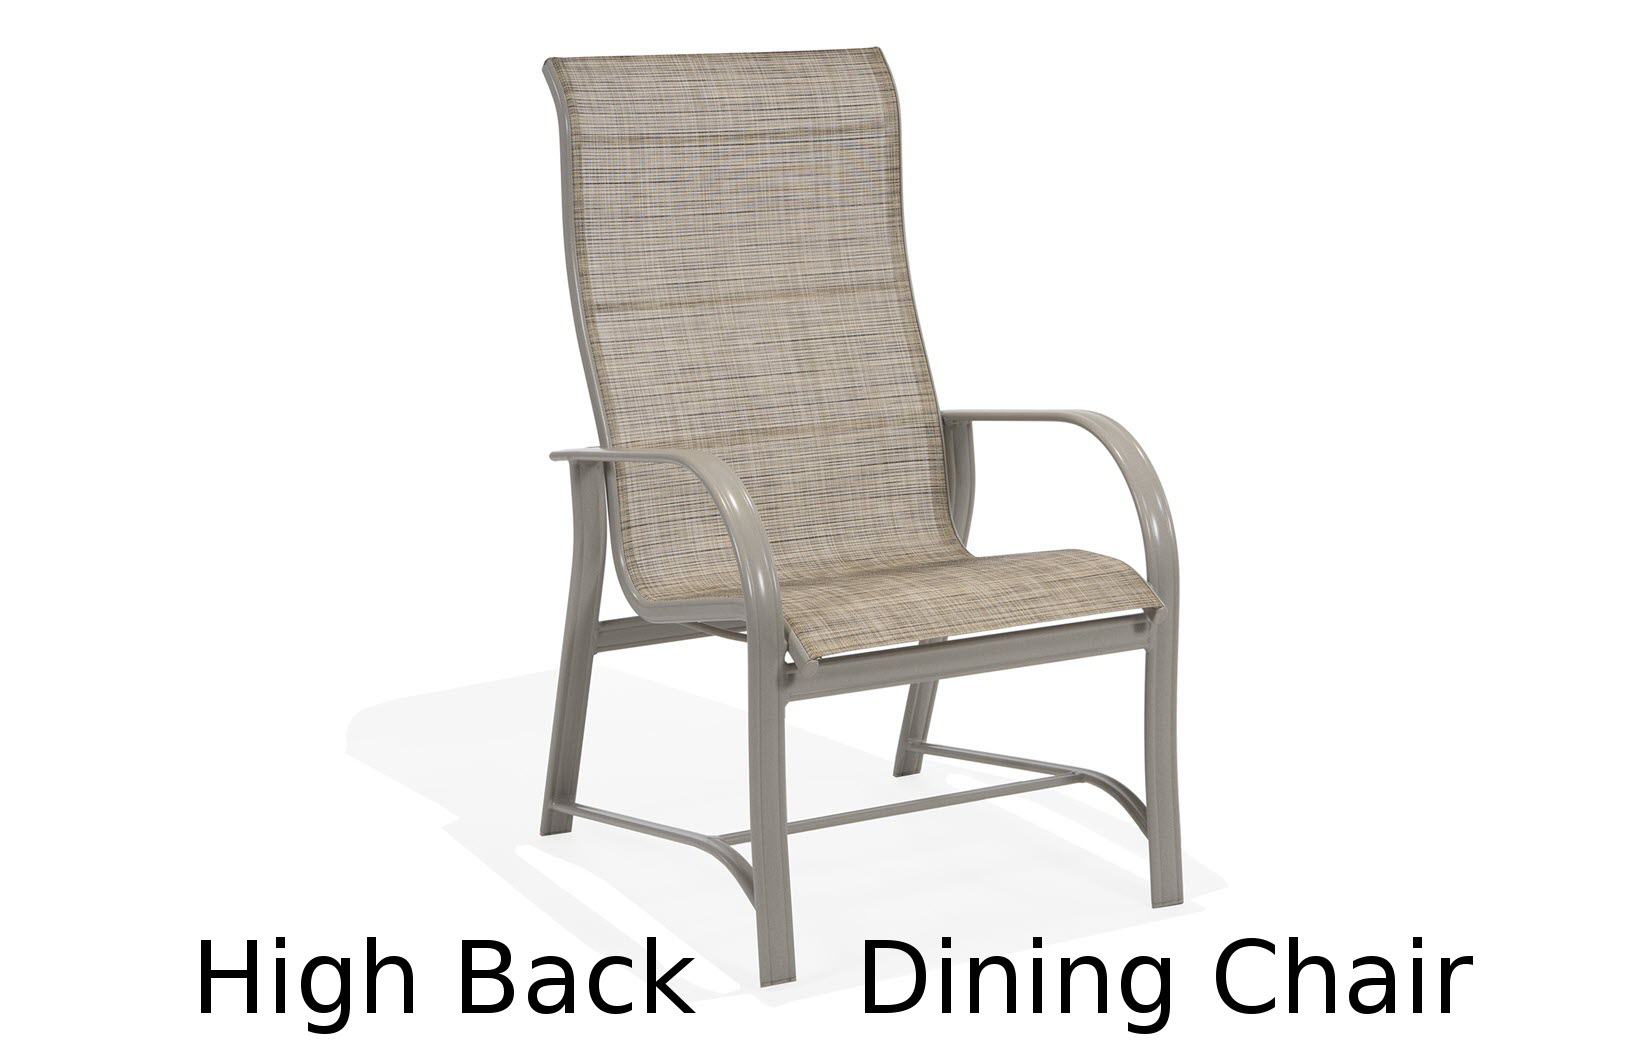 M65041 Mayfair Sling Collection Ultimate High Back Dining Chair